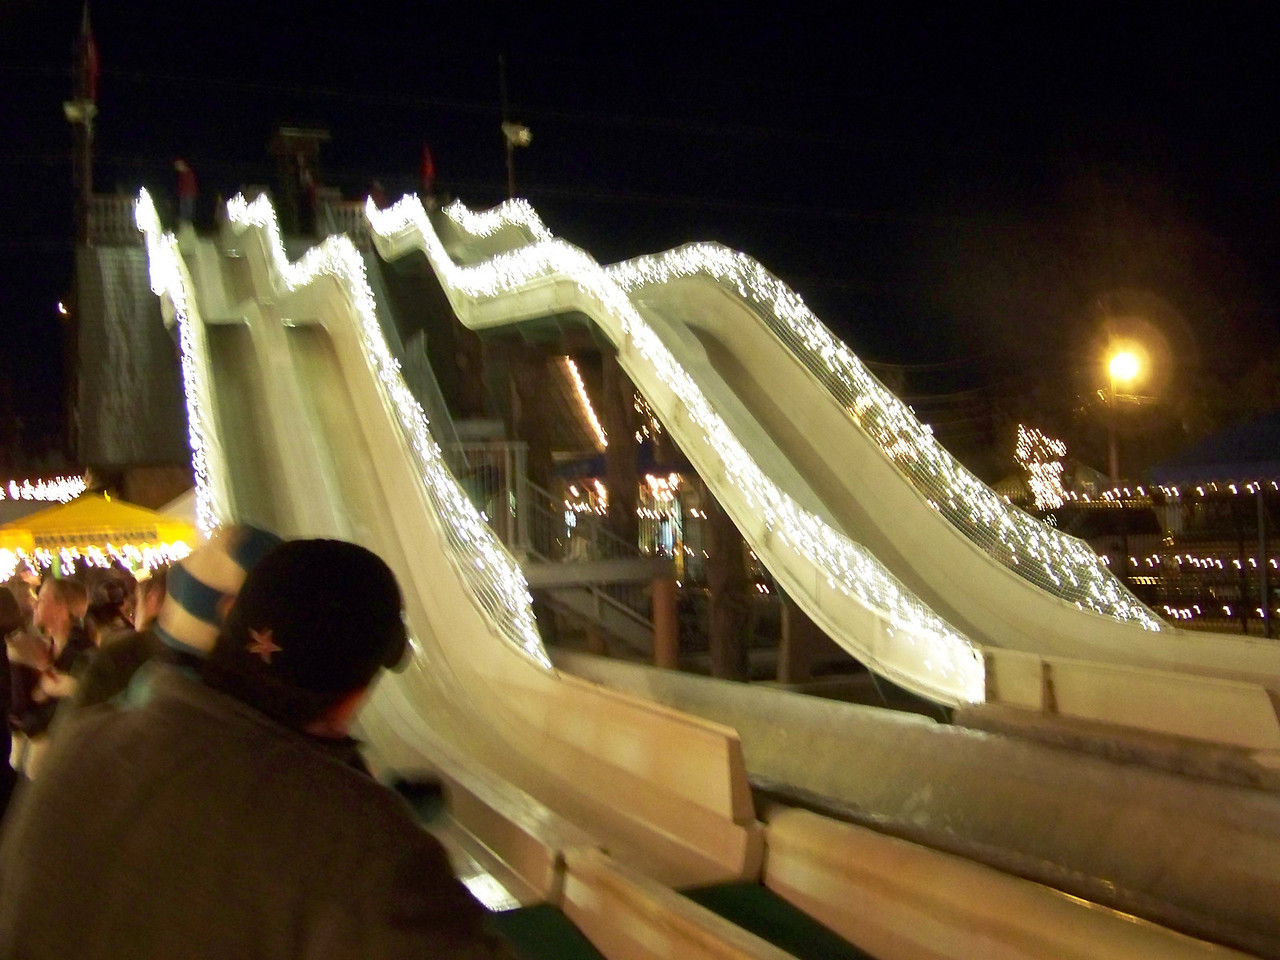 Several of the water slides were open as dry slides--you had to sit on a special mat in order to scoot smoothly.<br /> [Schlitterbahn's Hill Country Christmas 2009]